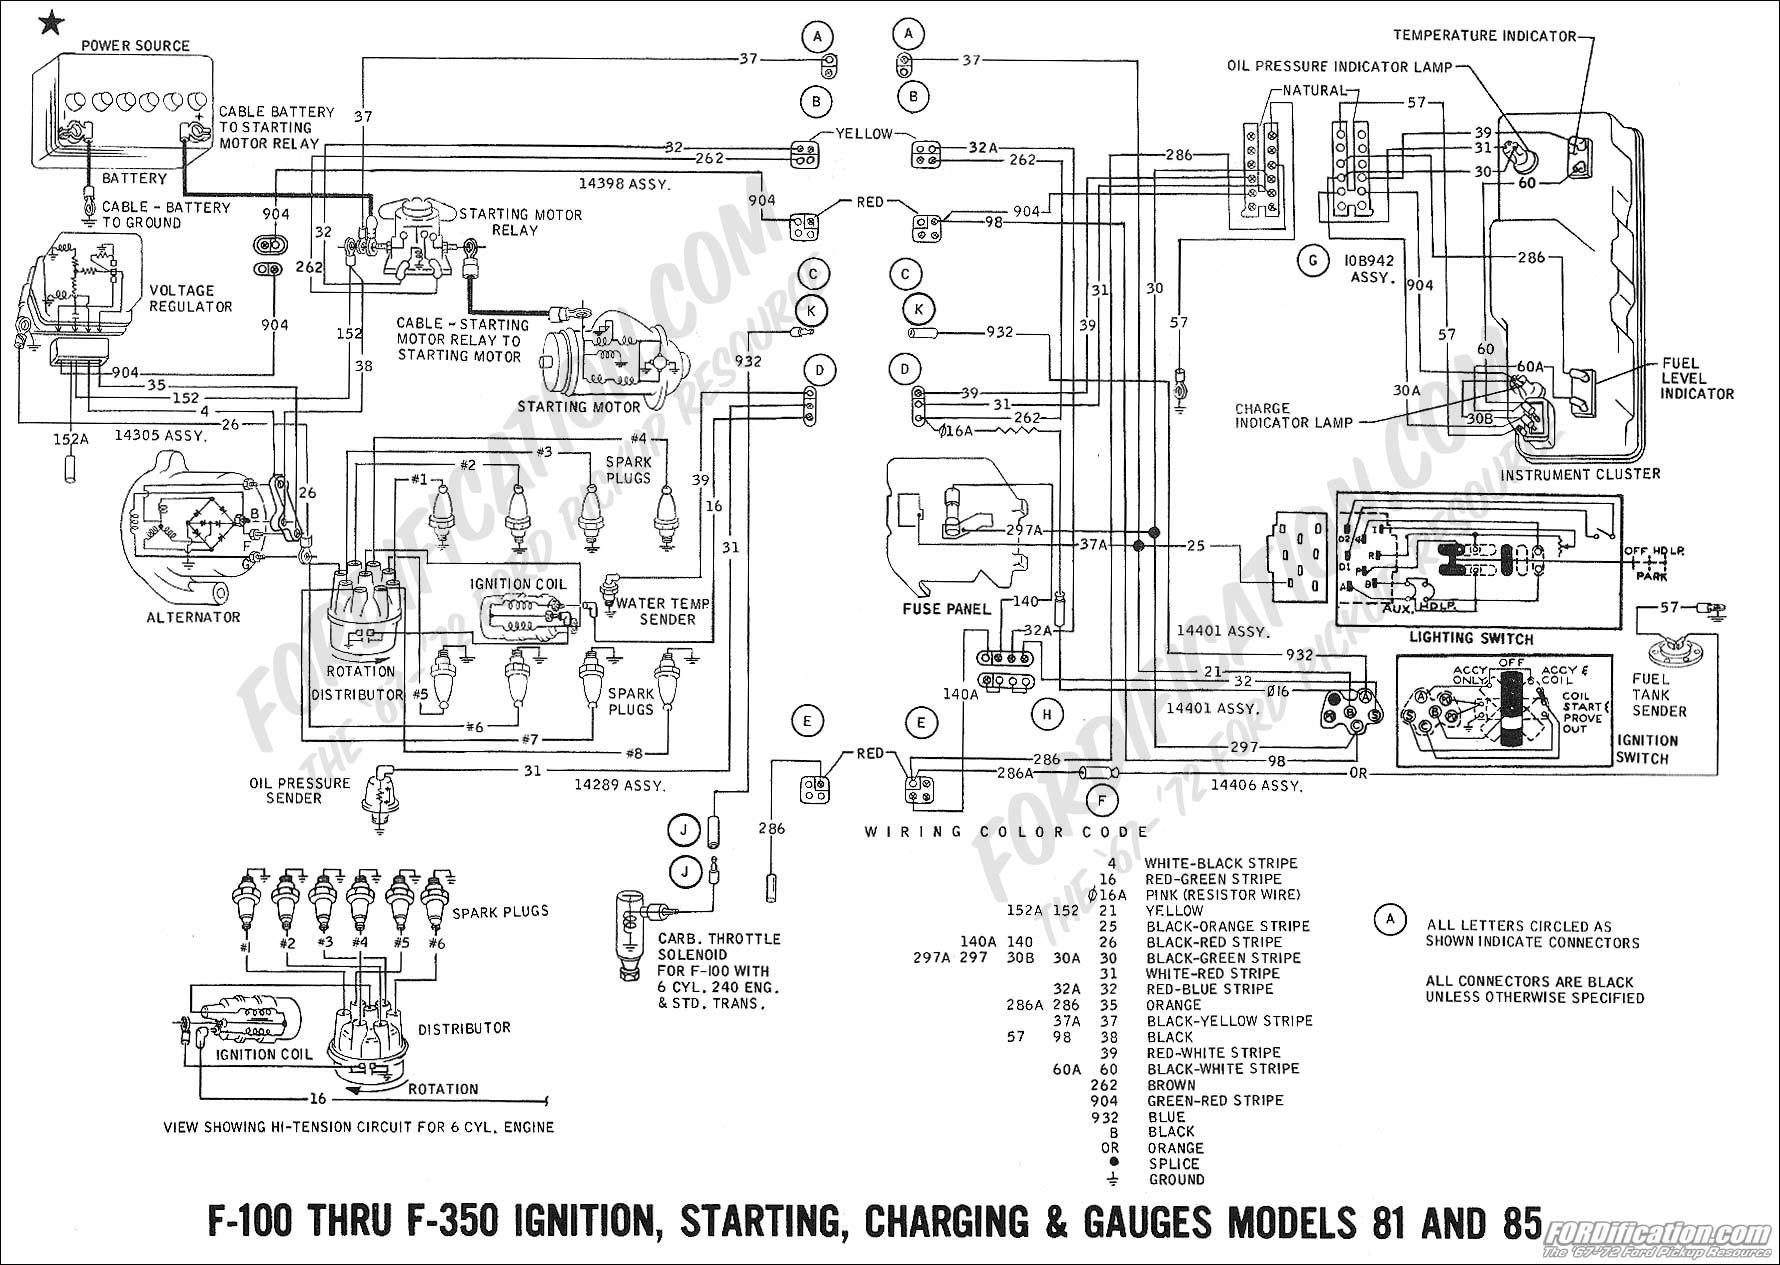 Ford Galaxy Wiring Diagram Download 35 Images 1964 Fairlane Manual Free 80 1969charging2 11e20ef93683157eb5c91a9f1025e72be7c50ad3 Ranger Bronco Ii Electrical Diagrams At The Station